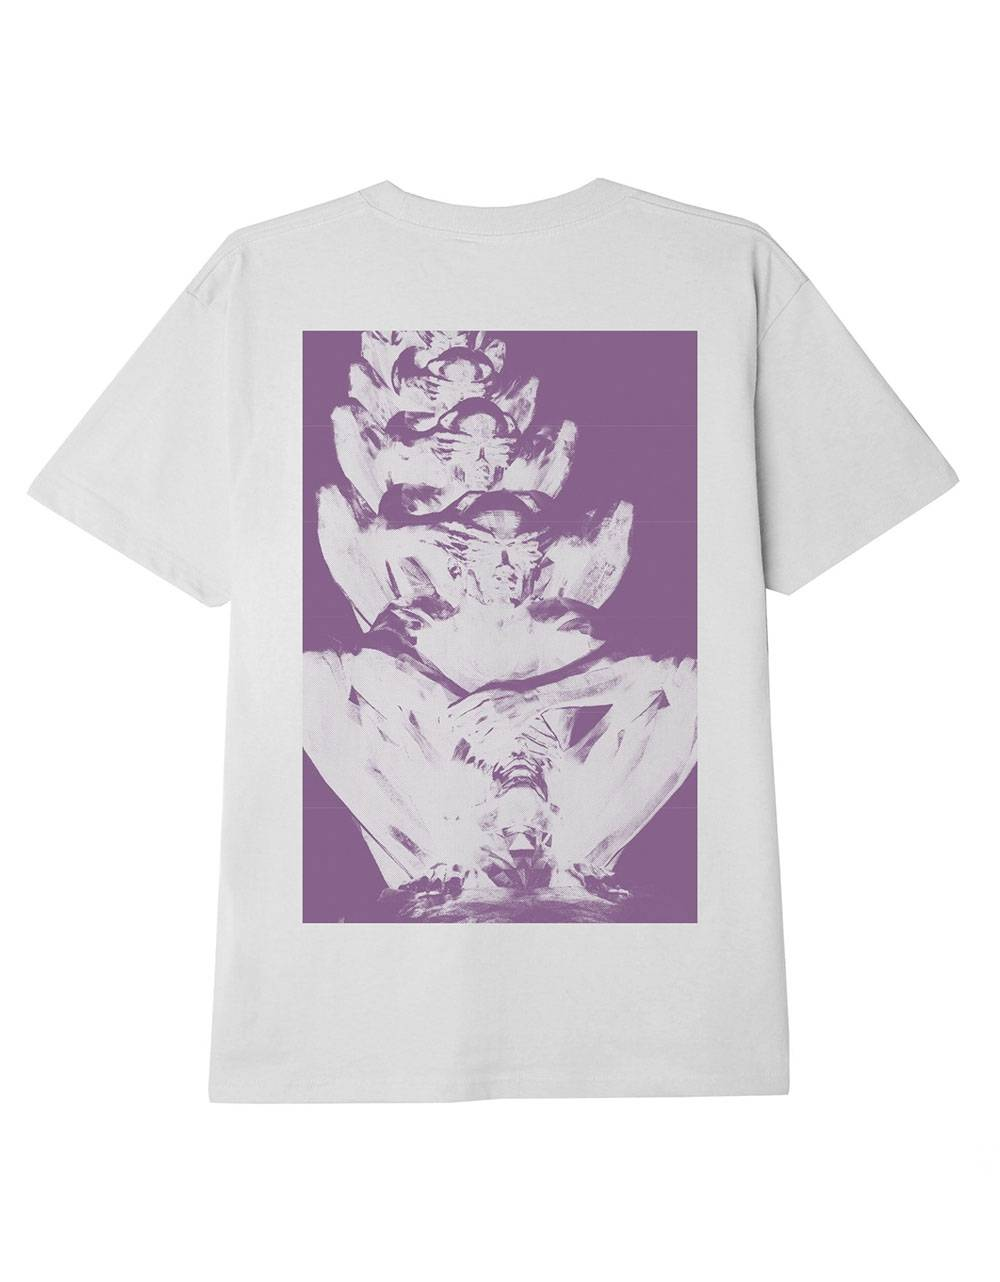 Obey Ride away sustainable t-shirt - white obey T-shirt 55,00€